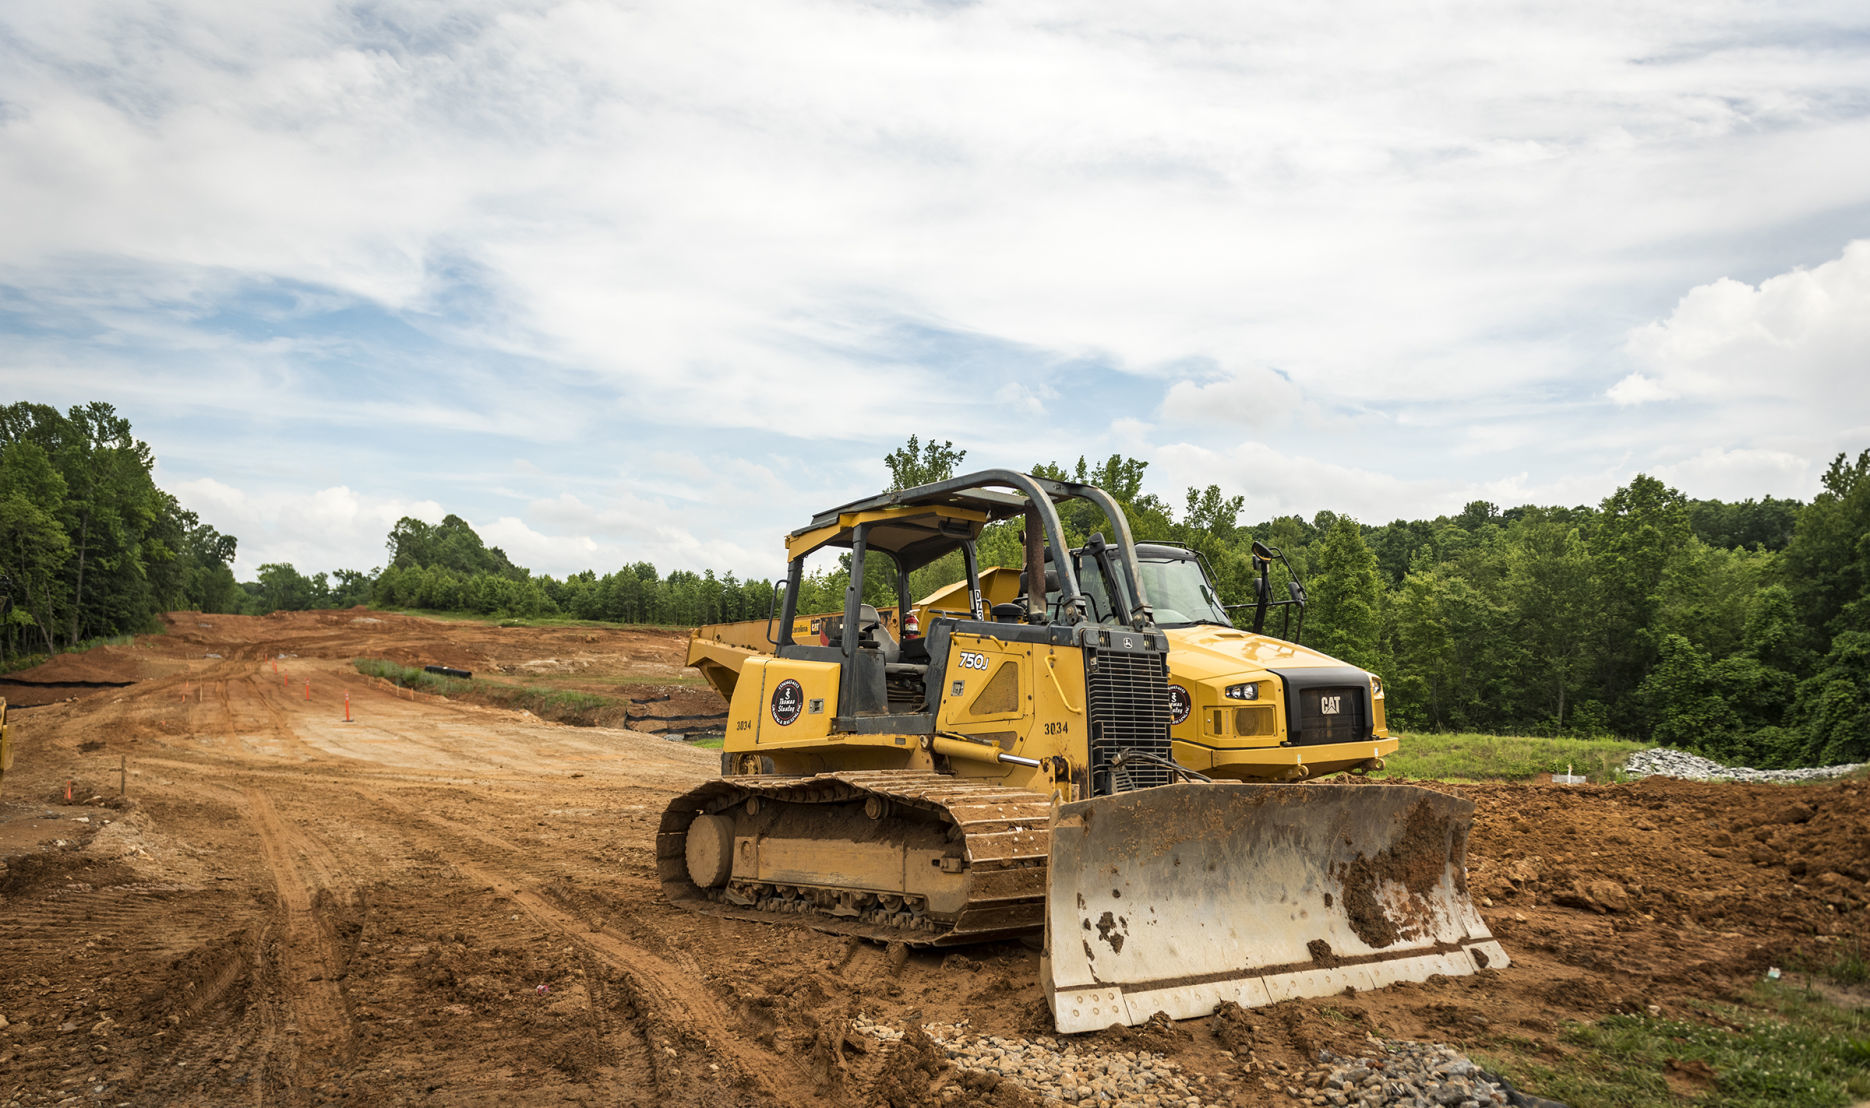 Atlanta developer buys Kernersville sites primed for Amazon fulfillment center | Winston Salem Journal